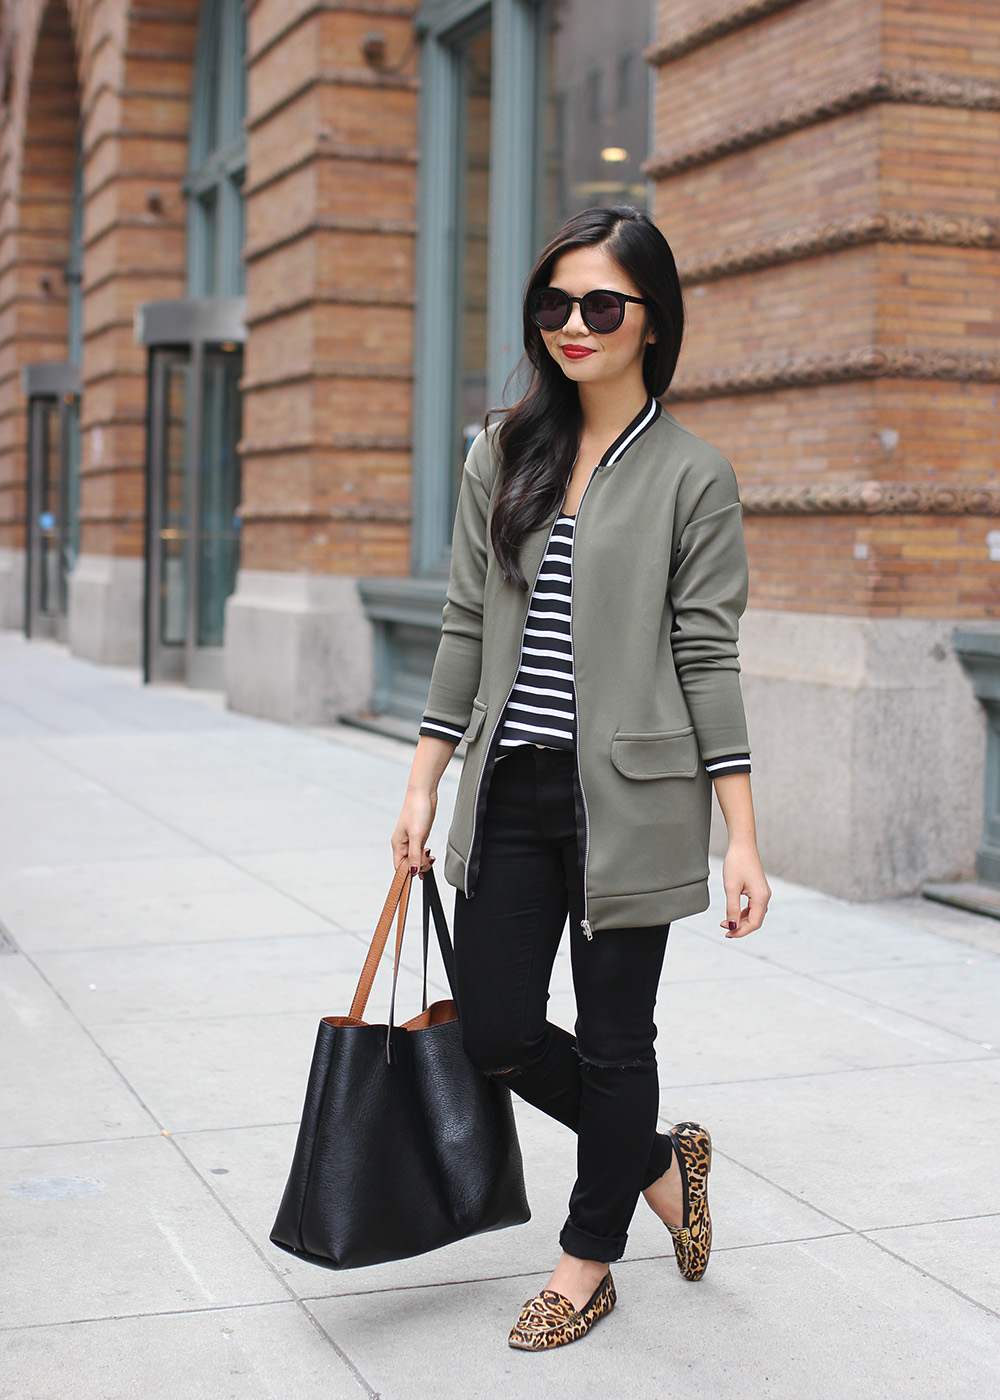 Olive Green Bomber Jacket - Skirt The Rules | Life & Style in NYC